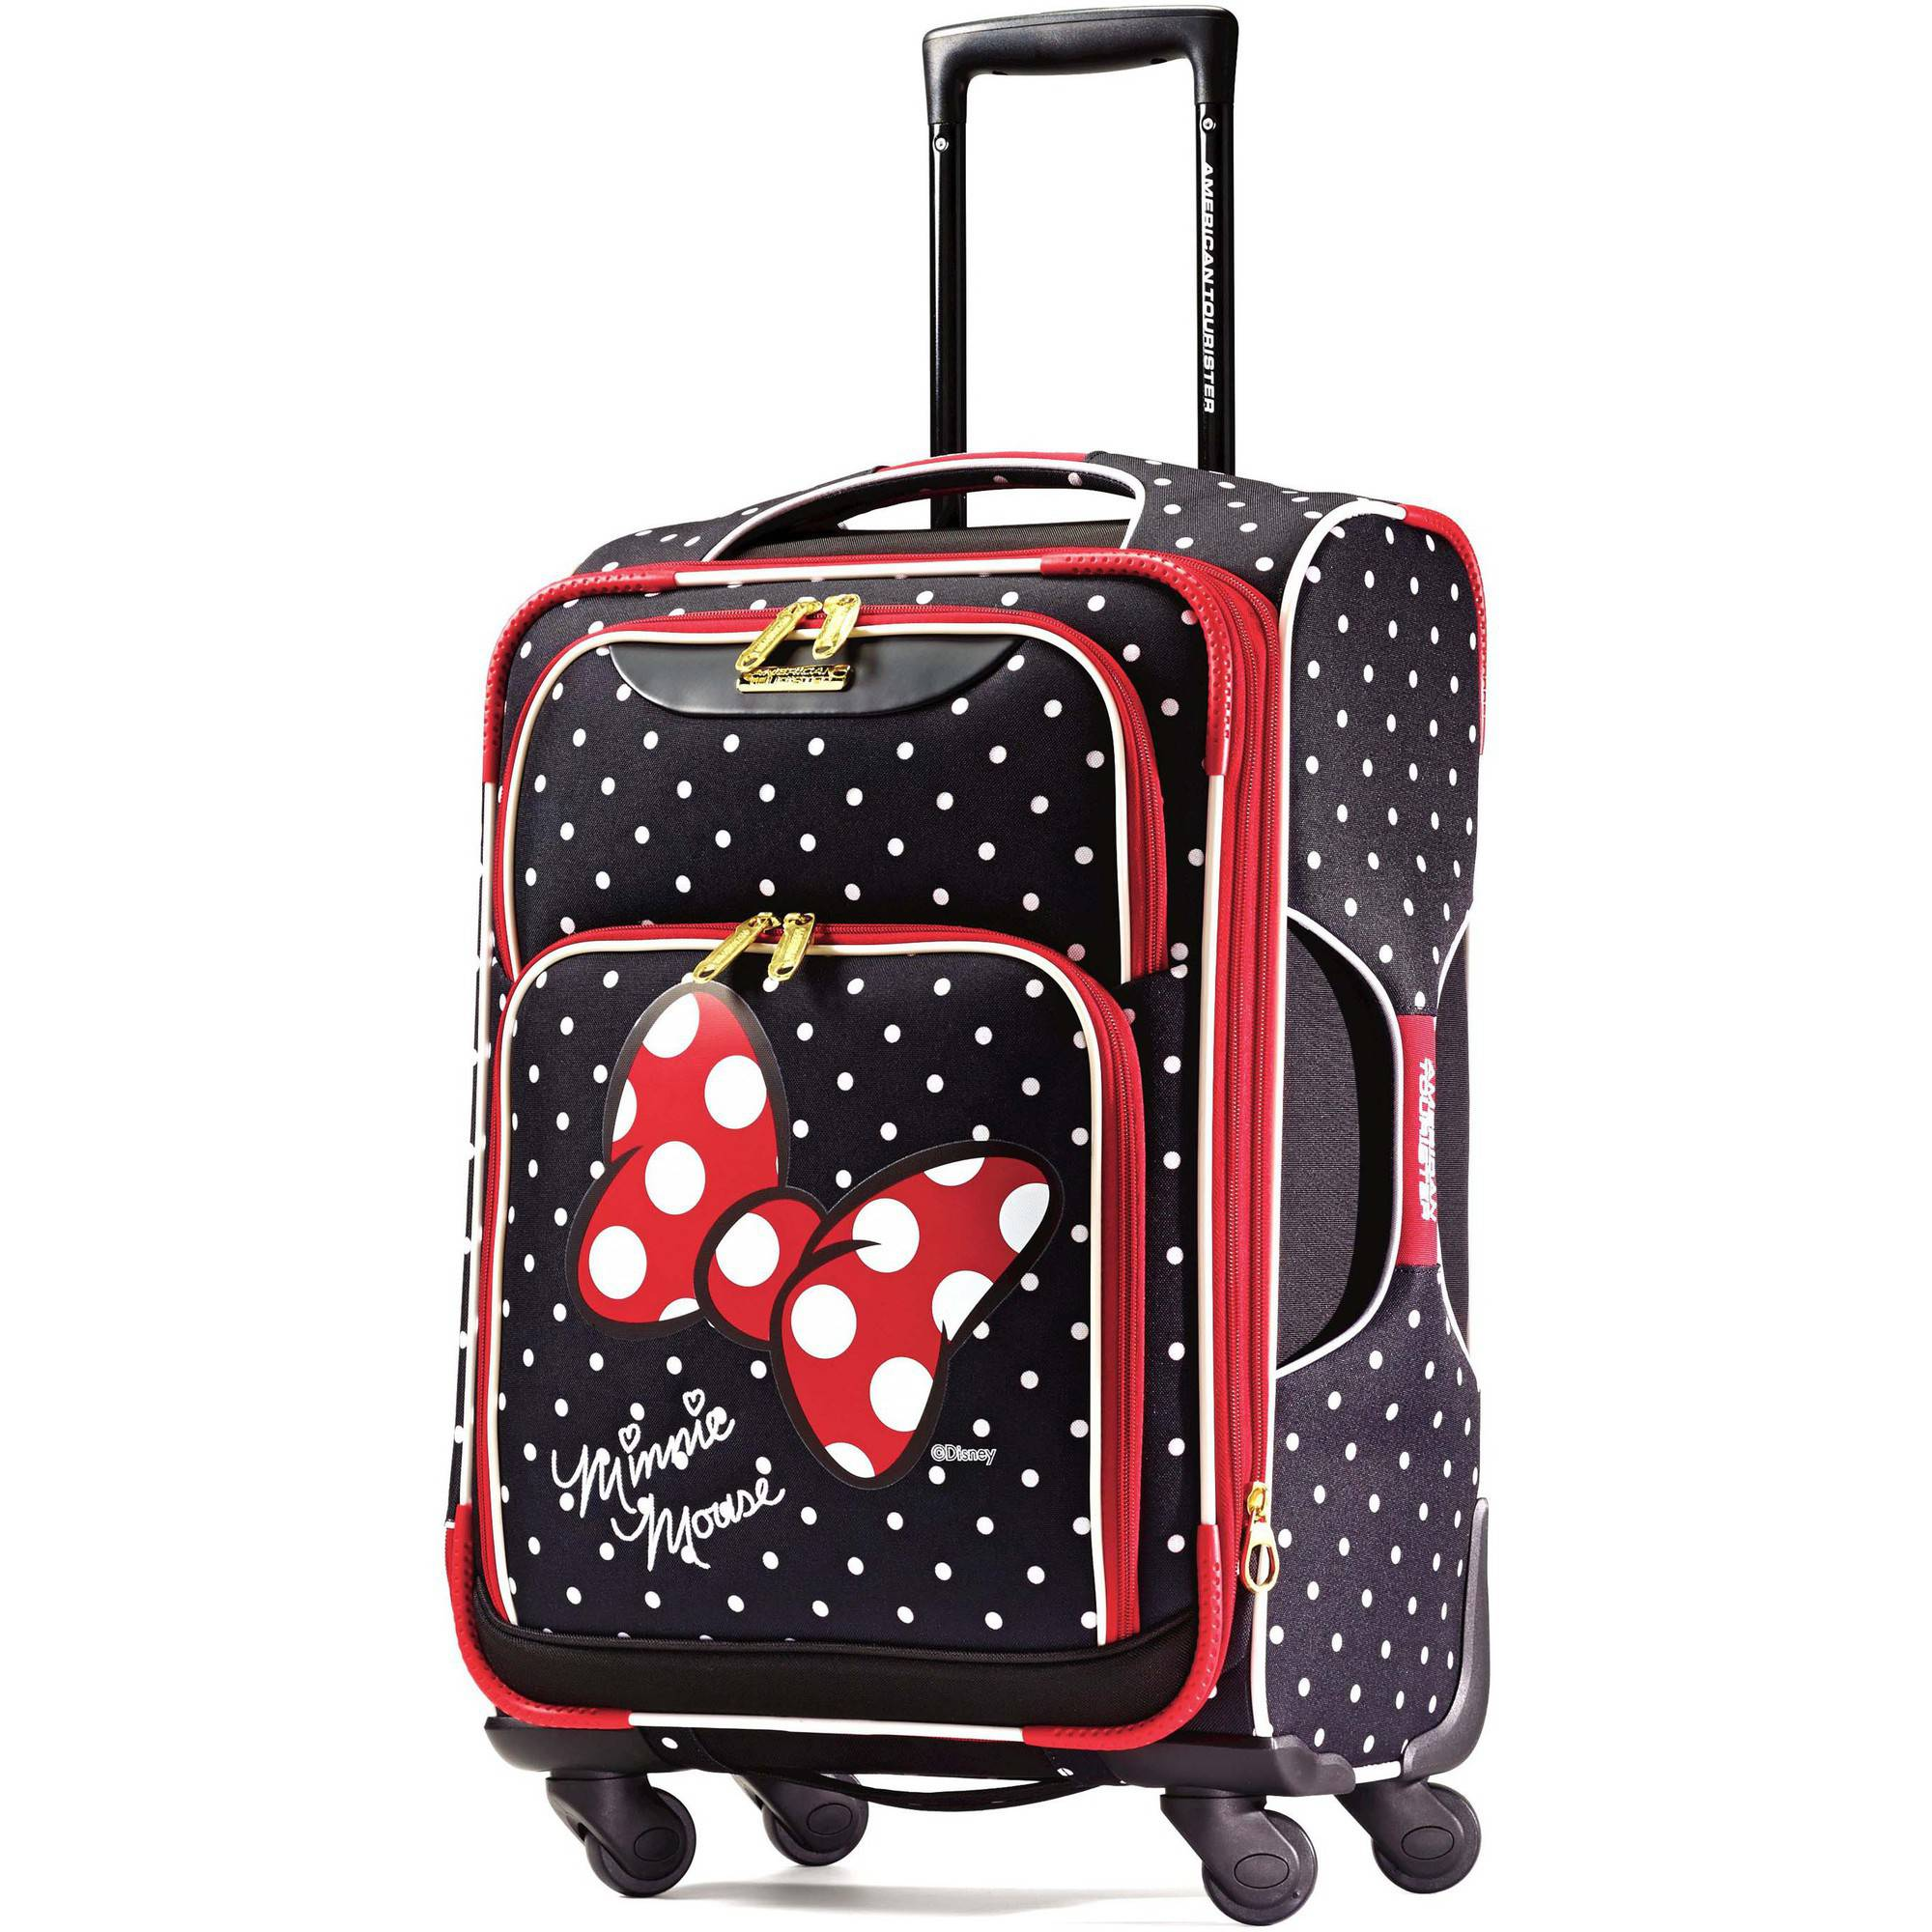 American Tourister Disney 21u0022 Softside Spinner Kids Luggage